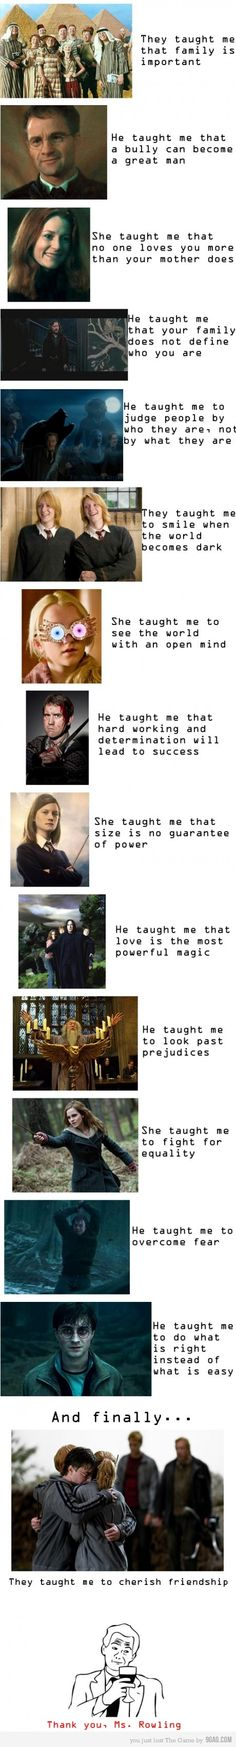 Potter lessons.